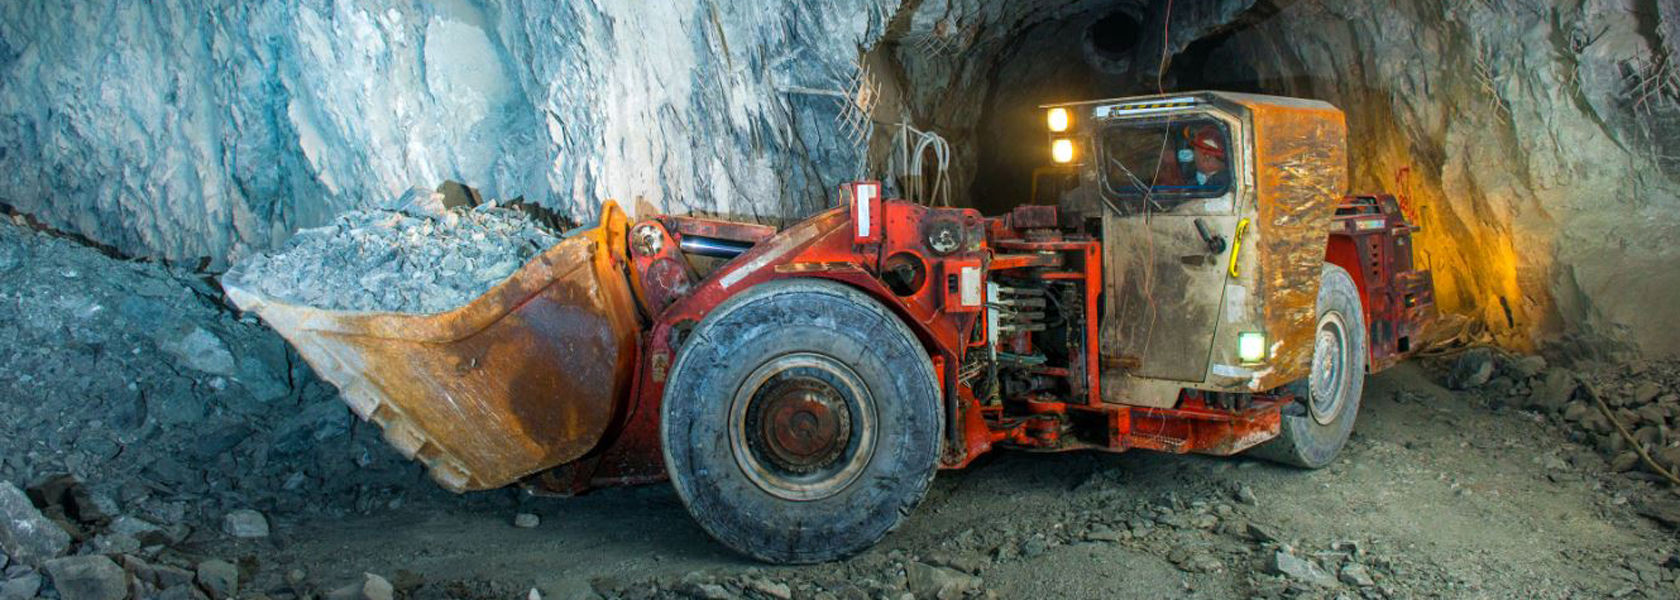 Unleash the potential in your mining data with Pitram OLAP Analysis